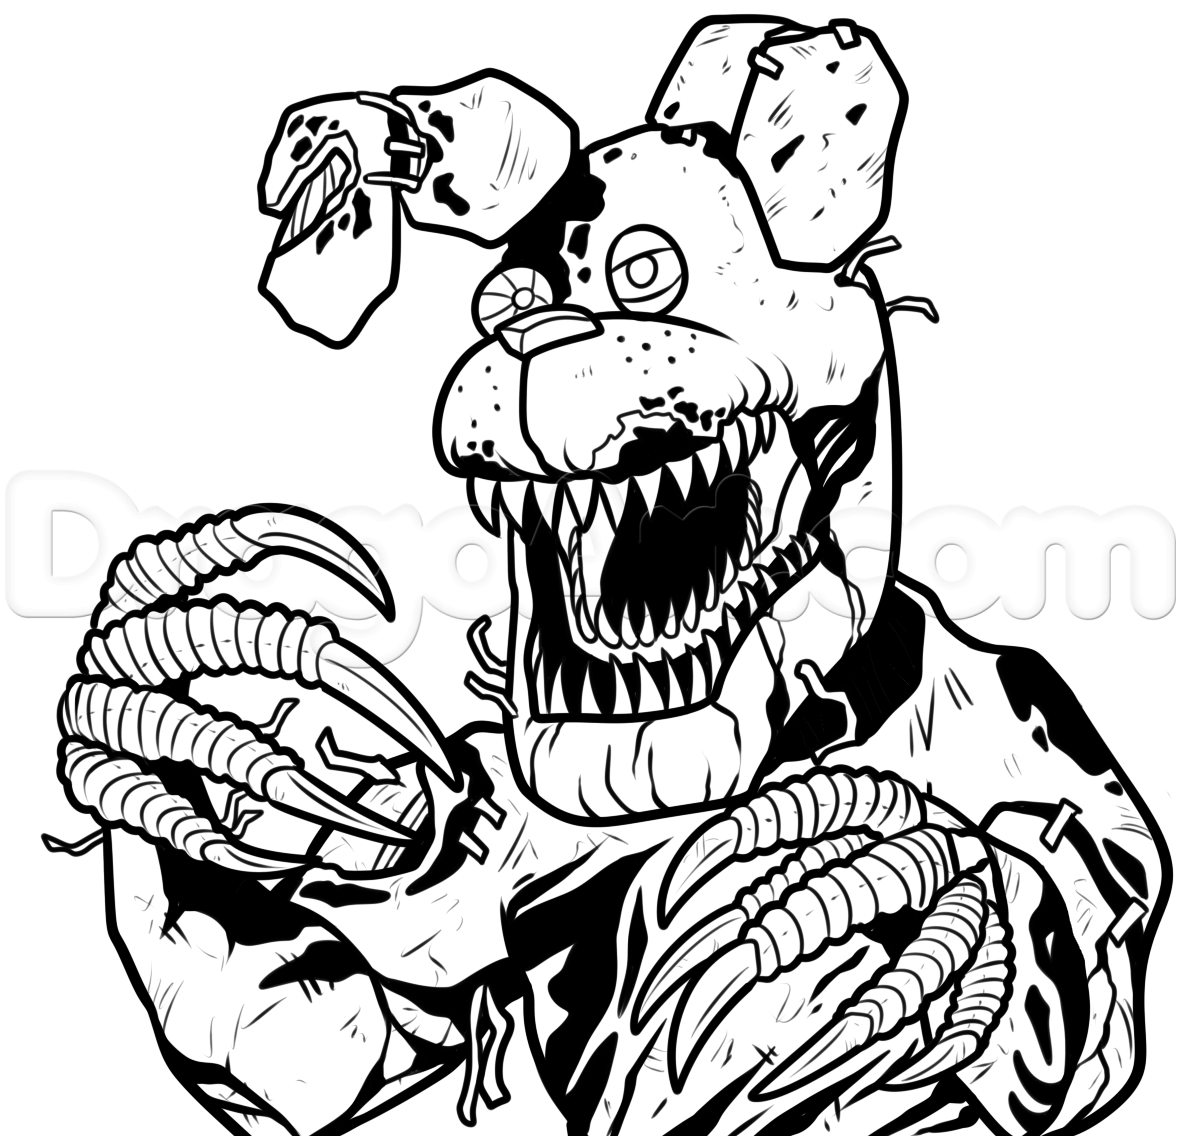 Bonnie Coloring Pages Nightmare Drawing | kids coloring ...